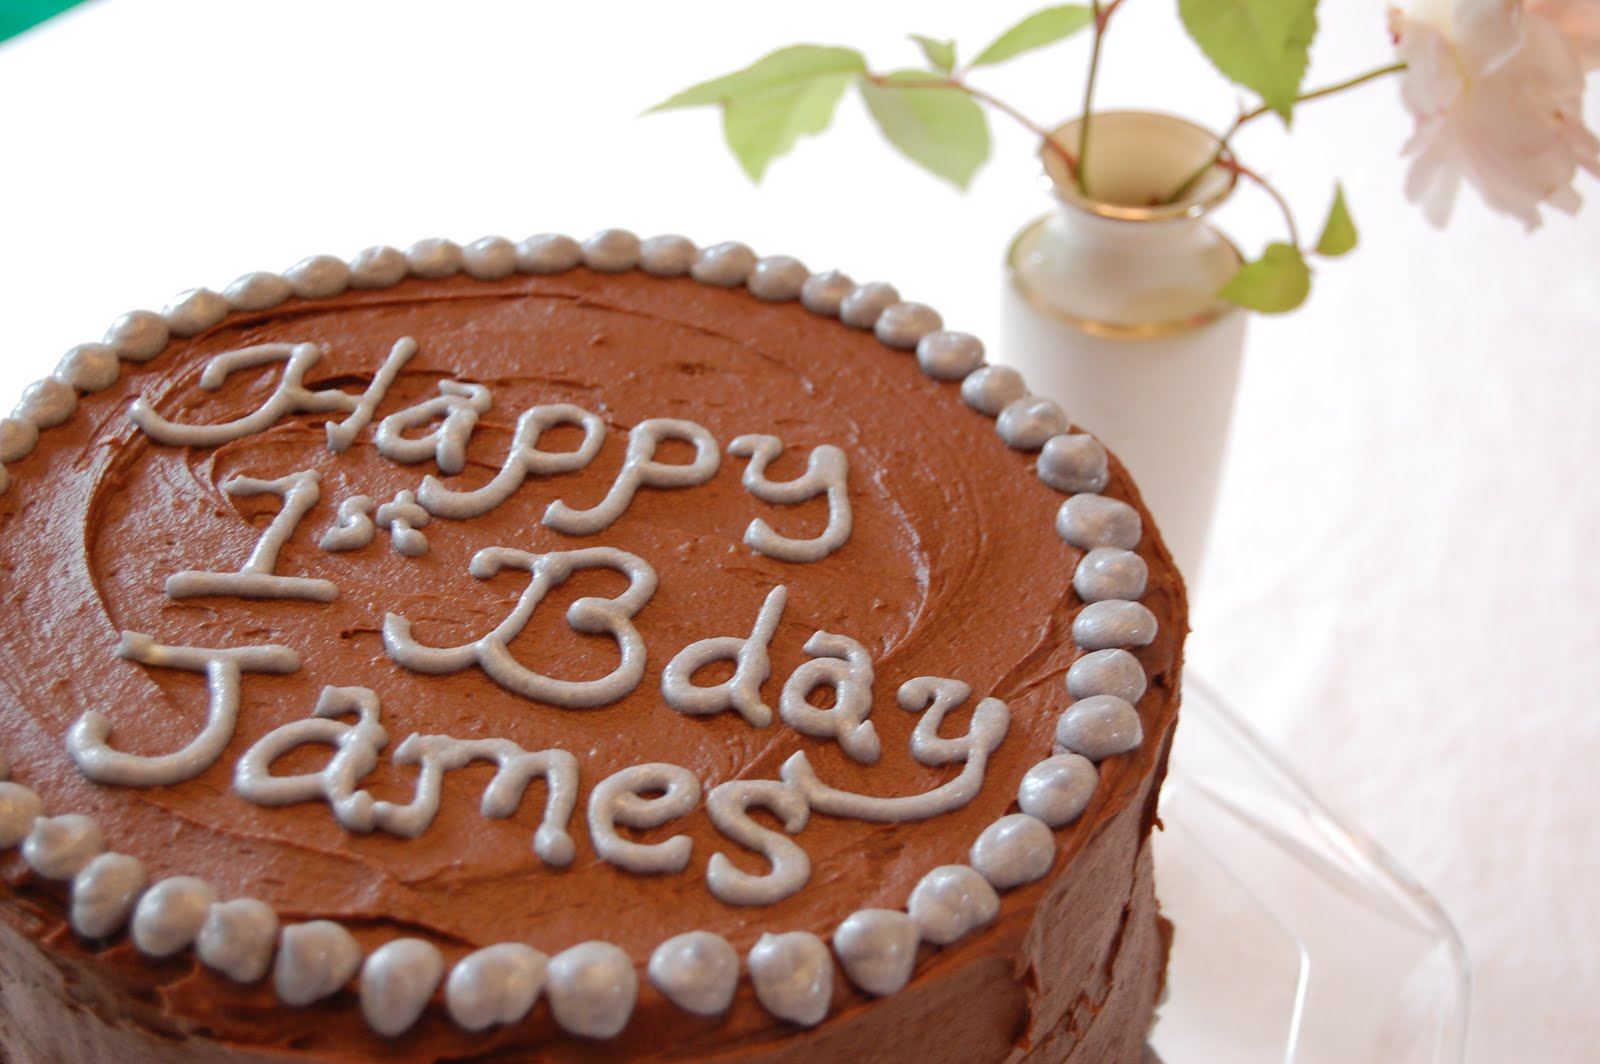 Happy birthday james cake images another birthday cake again happy birthday james cake images the apple cider mill homemaking tip cake flour substitute altavistaventures Image collections